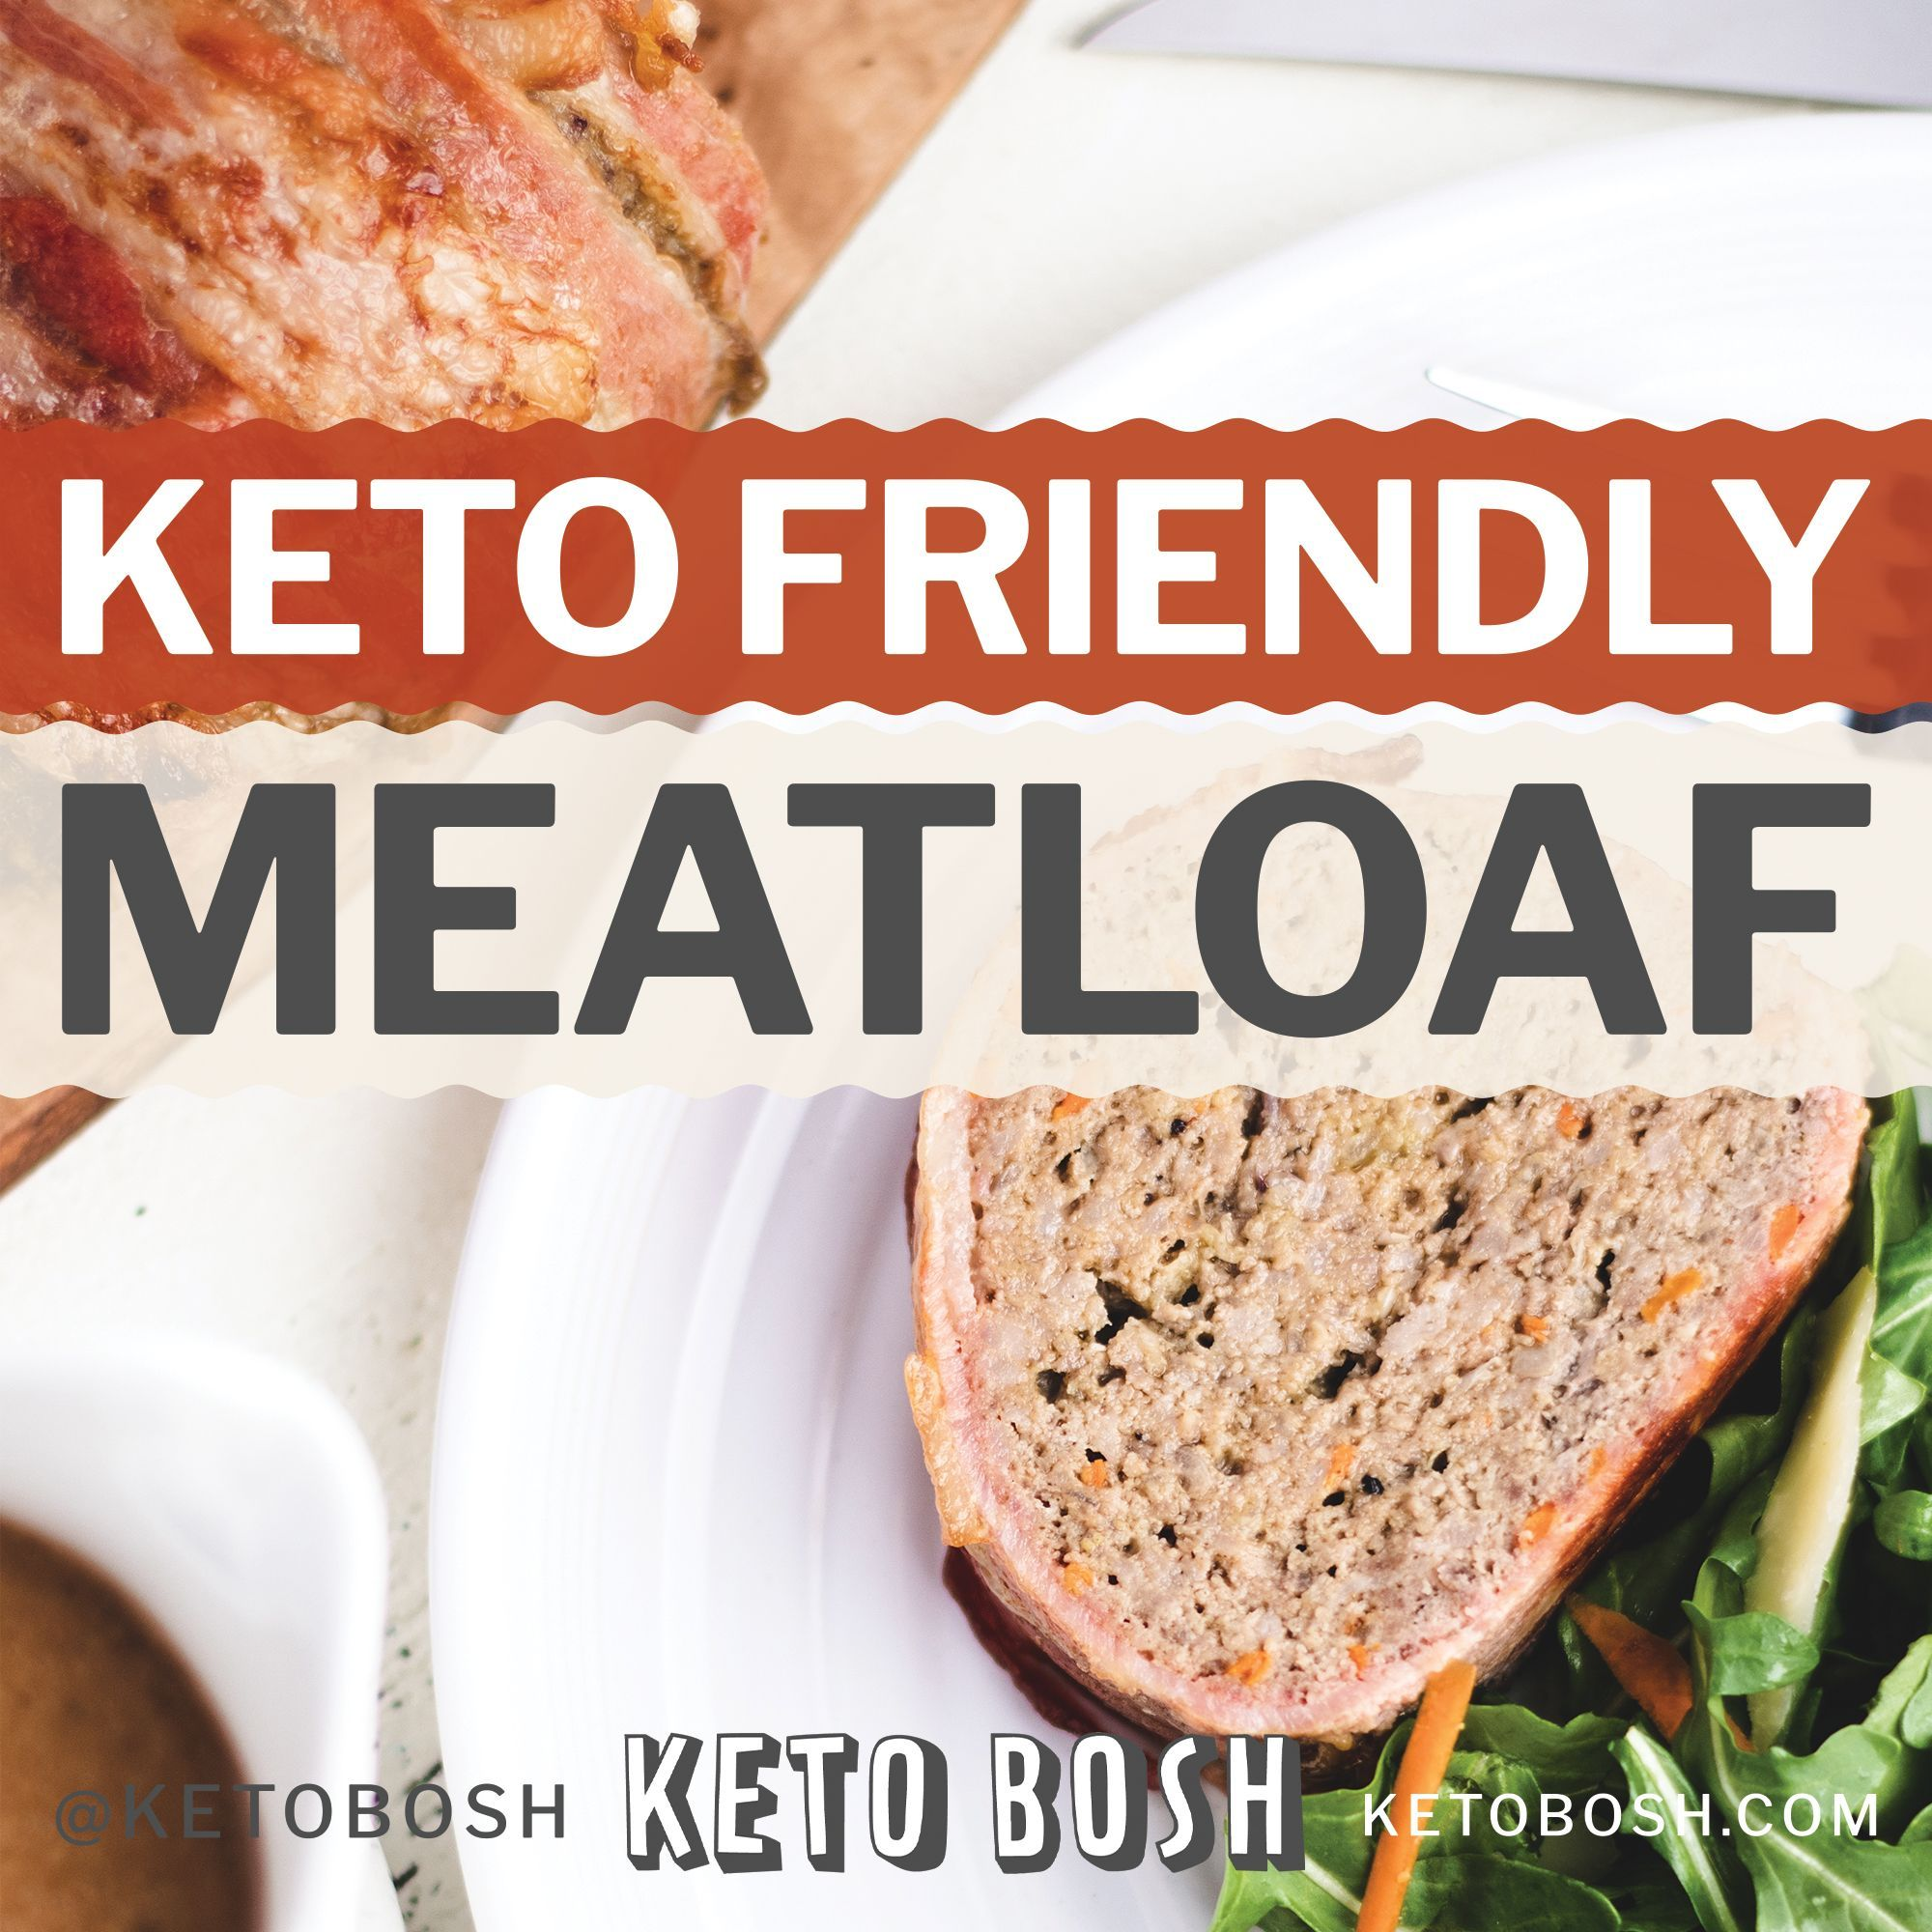 Keto Meatloaf Recipe Easy Low Carb With Onion Gravy Keto Bosh Recipe Bacon Wrapped Meatloaf Meatloaf Recipes Meatloaf